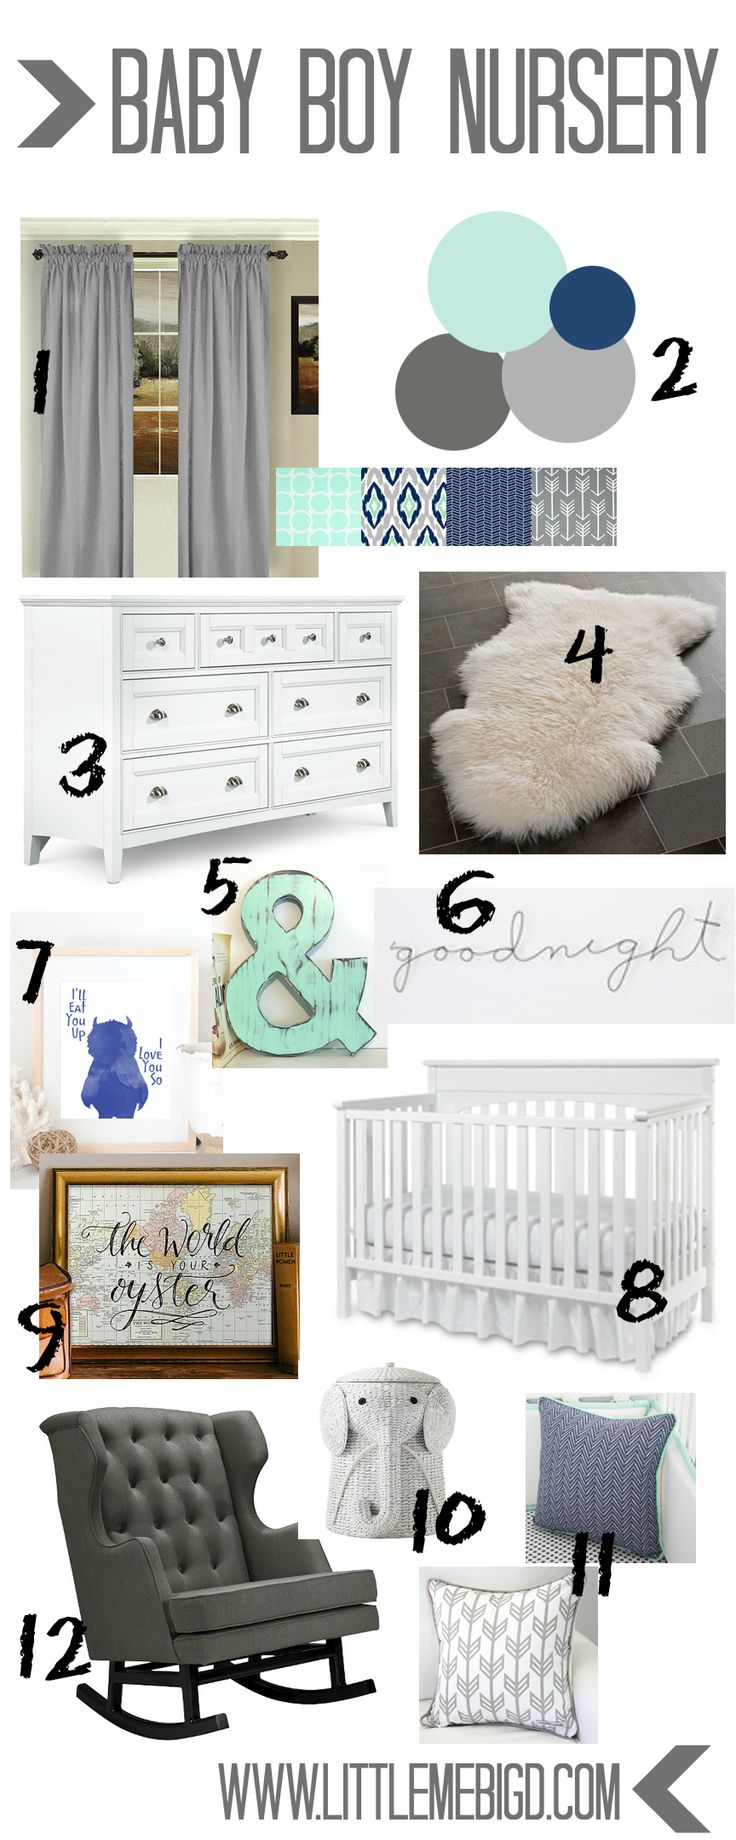 I am about half way through my pregnancy and am starting have been envisioning the nursery for months. I would like to get a jump start on at least the painting and assembling the crib because running around Texas in August at 7.5 months pregnant does not sound ideal to say the least. We moved into